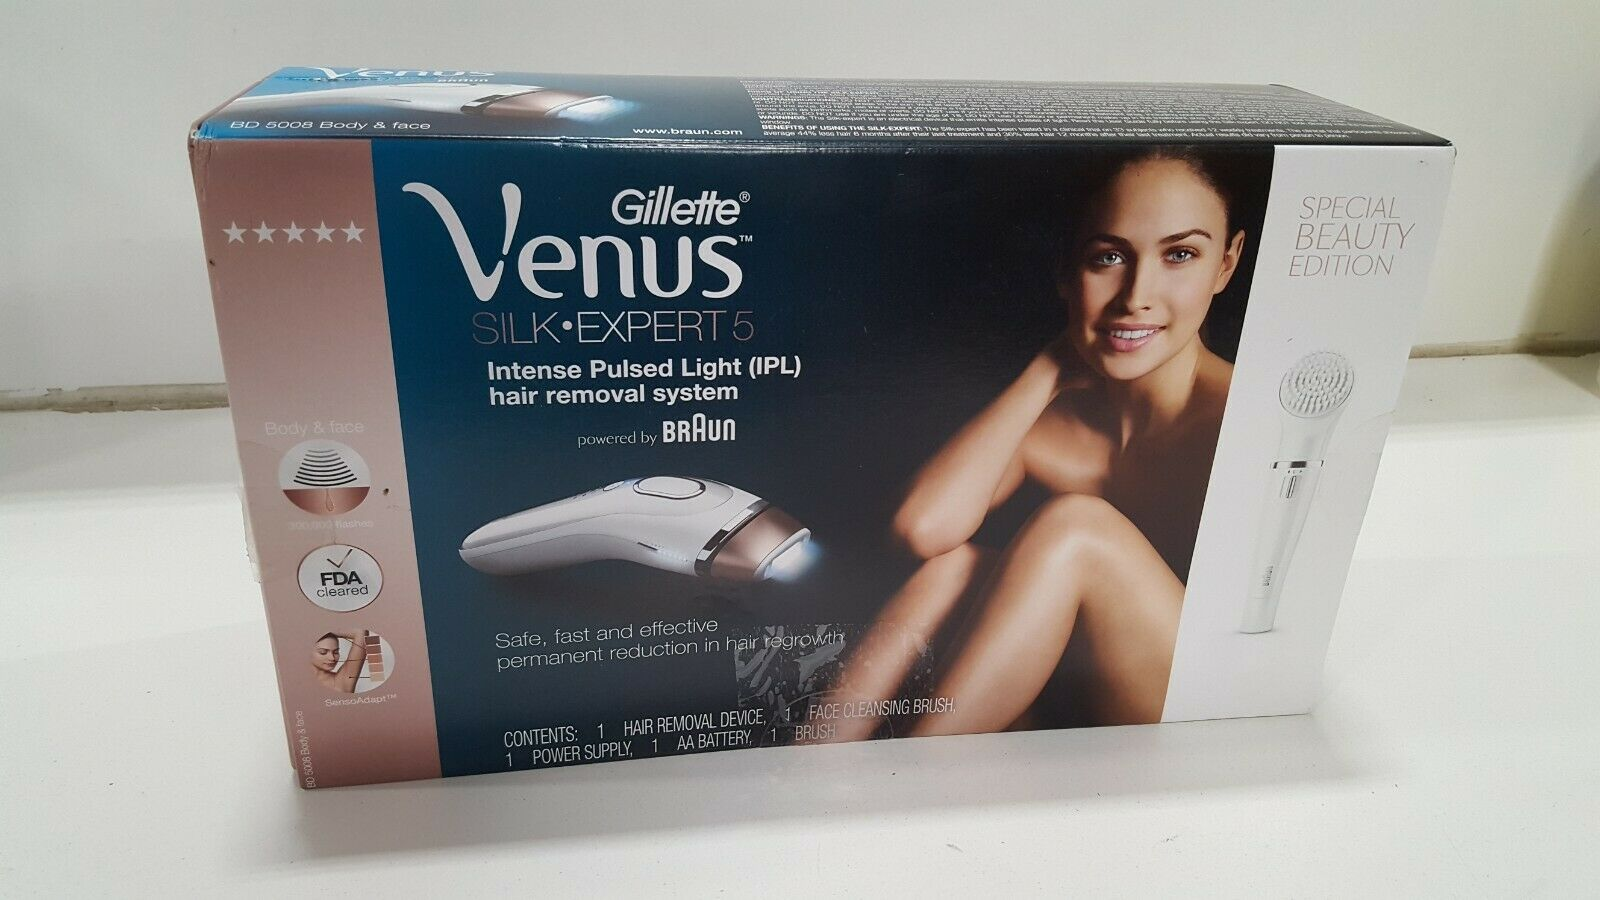 Gillette Venus Silk Expert Intense Pulsed Light Hair Removal